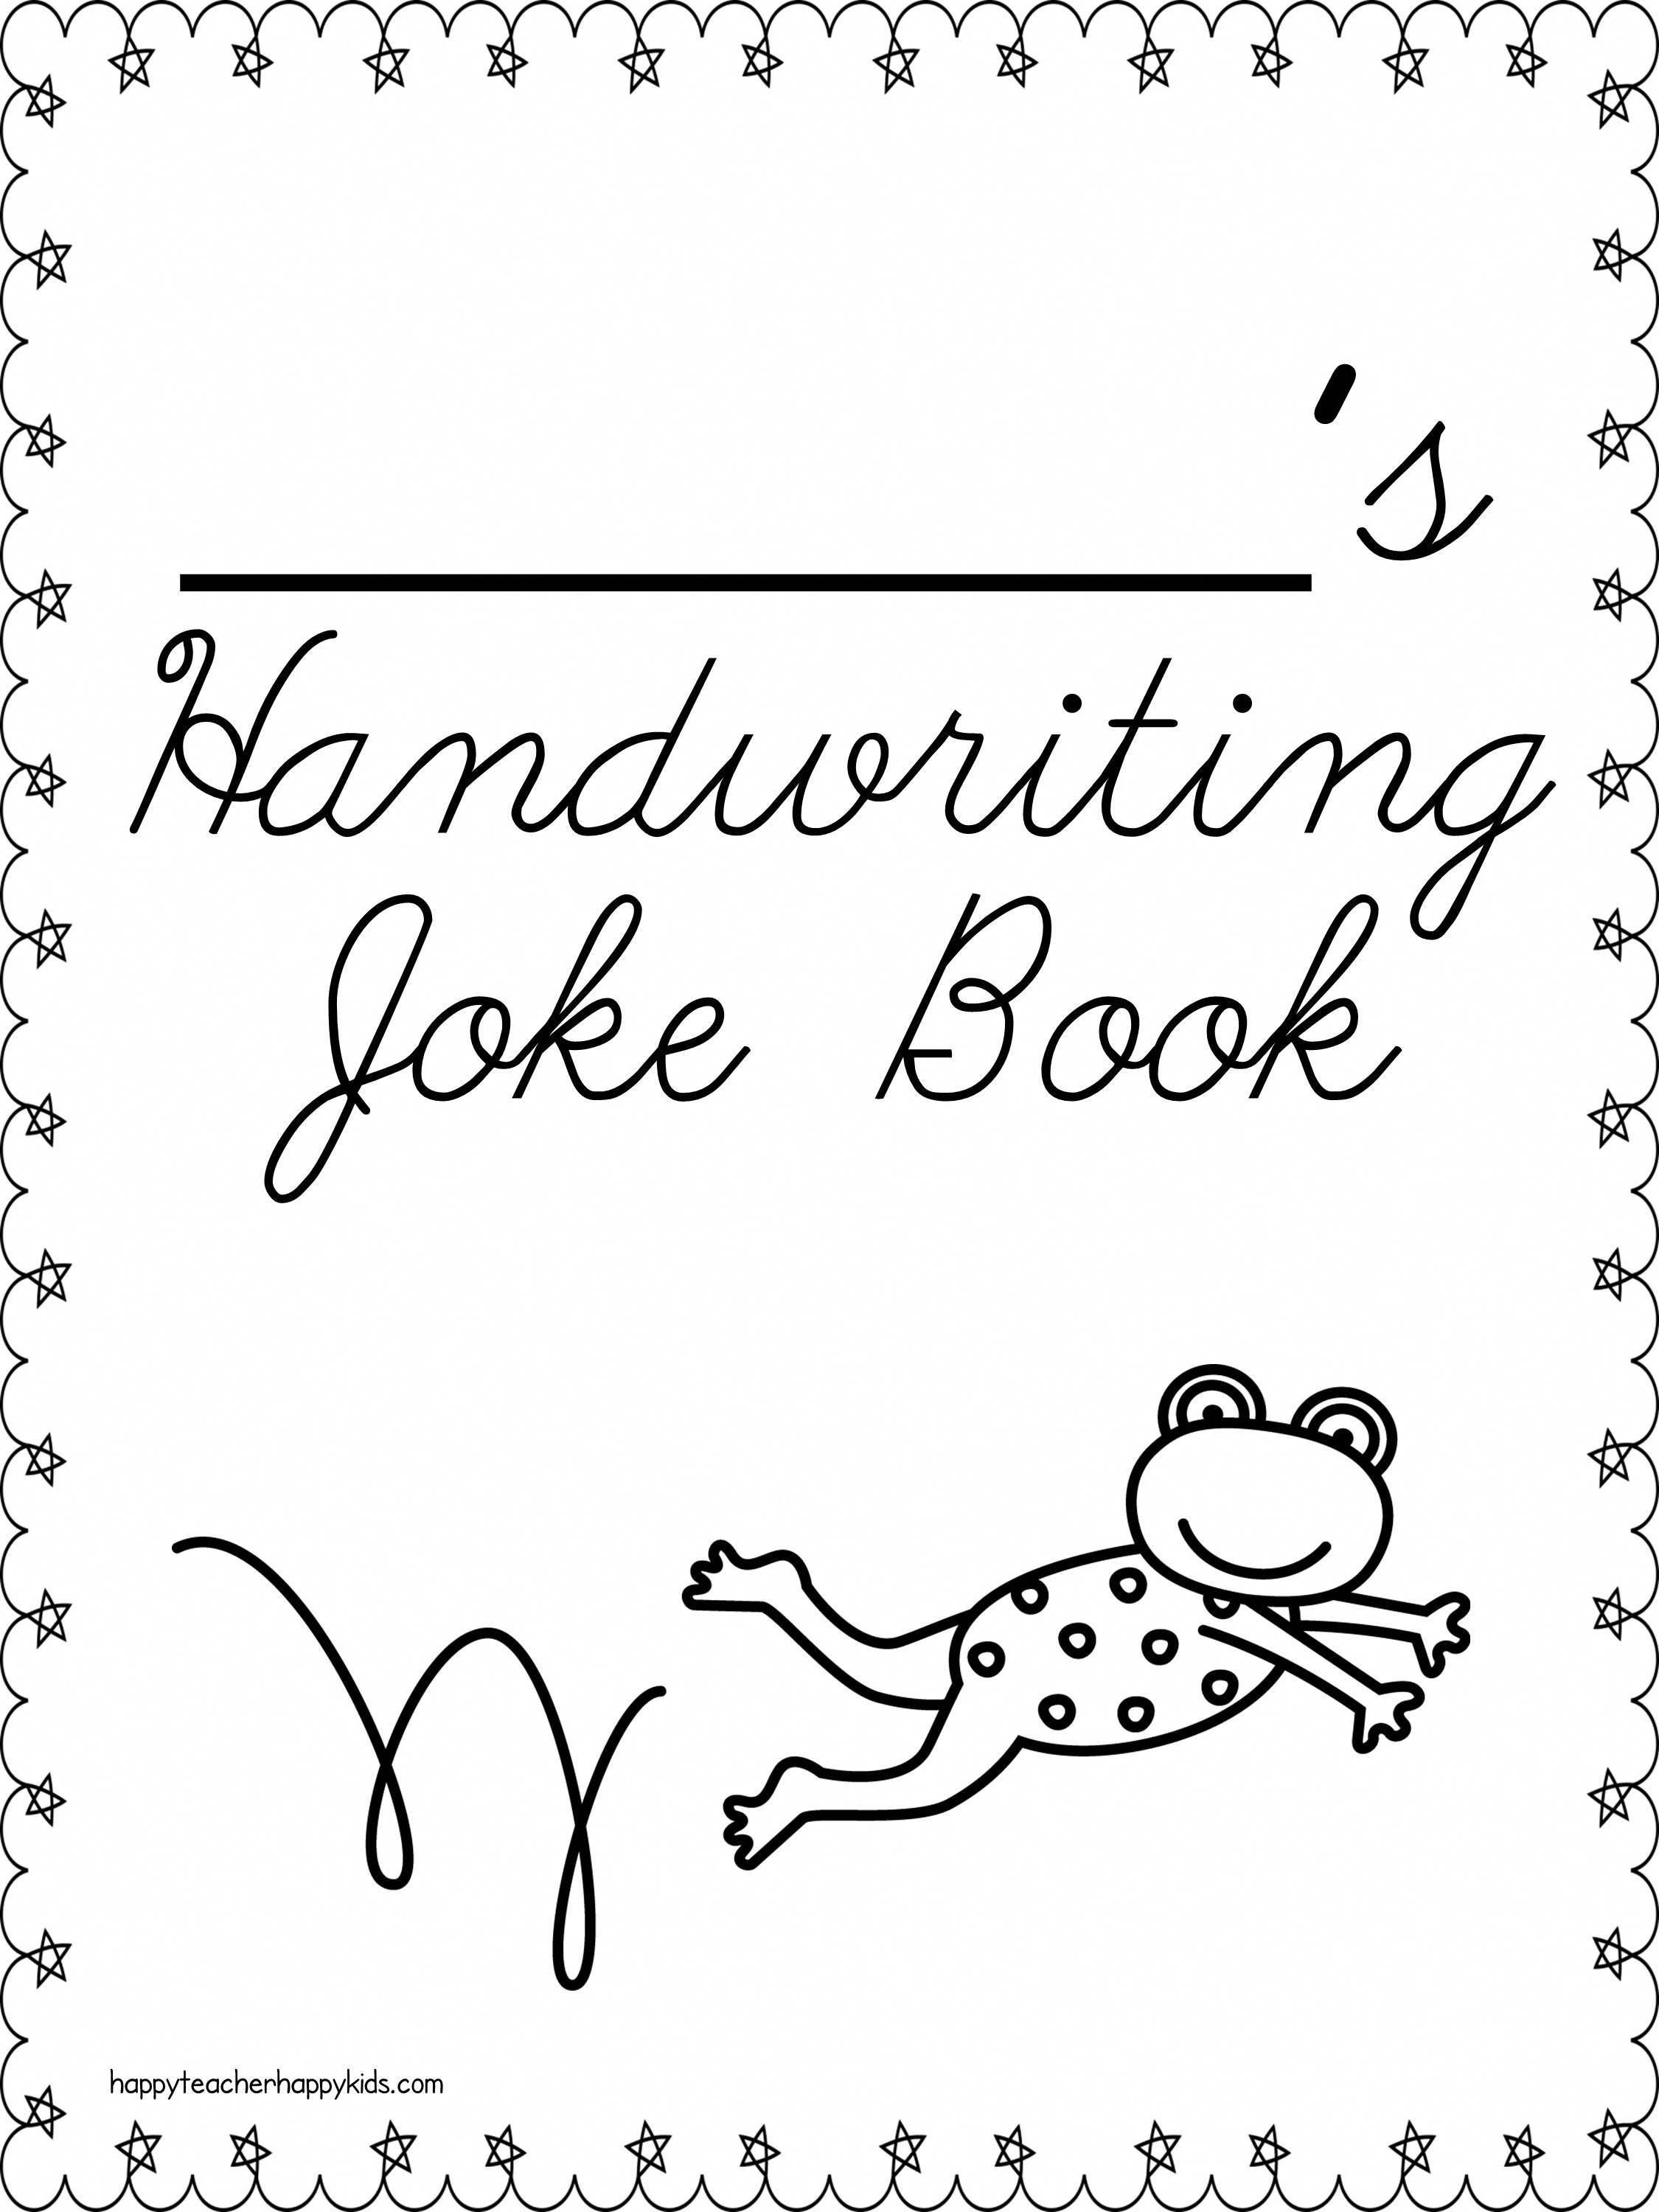 Cursive Handwriting Joke Book Check Out The Preview For A